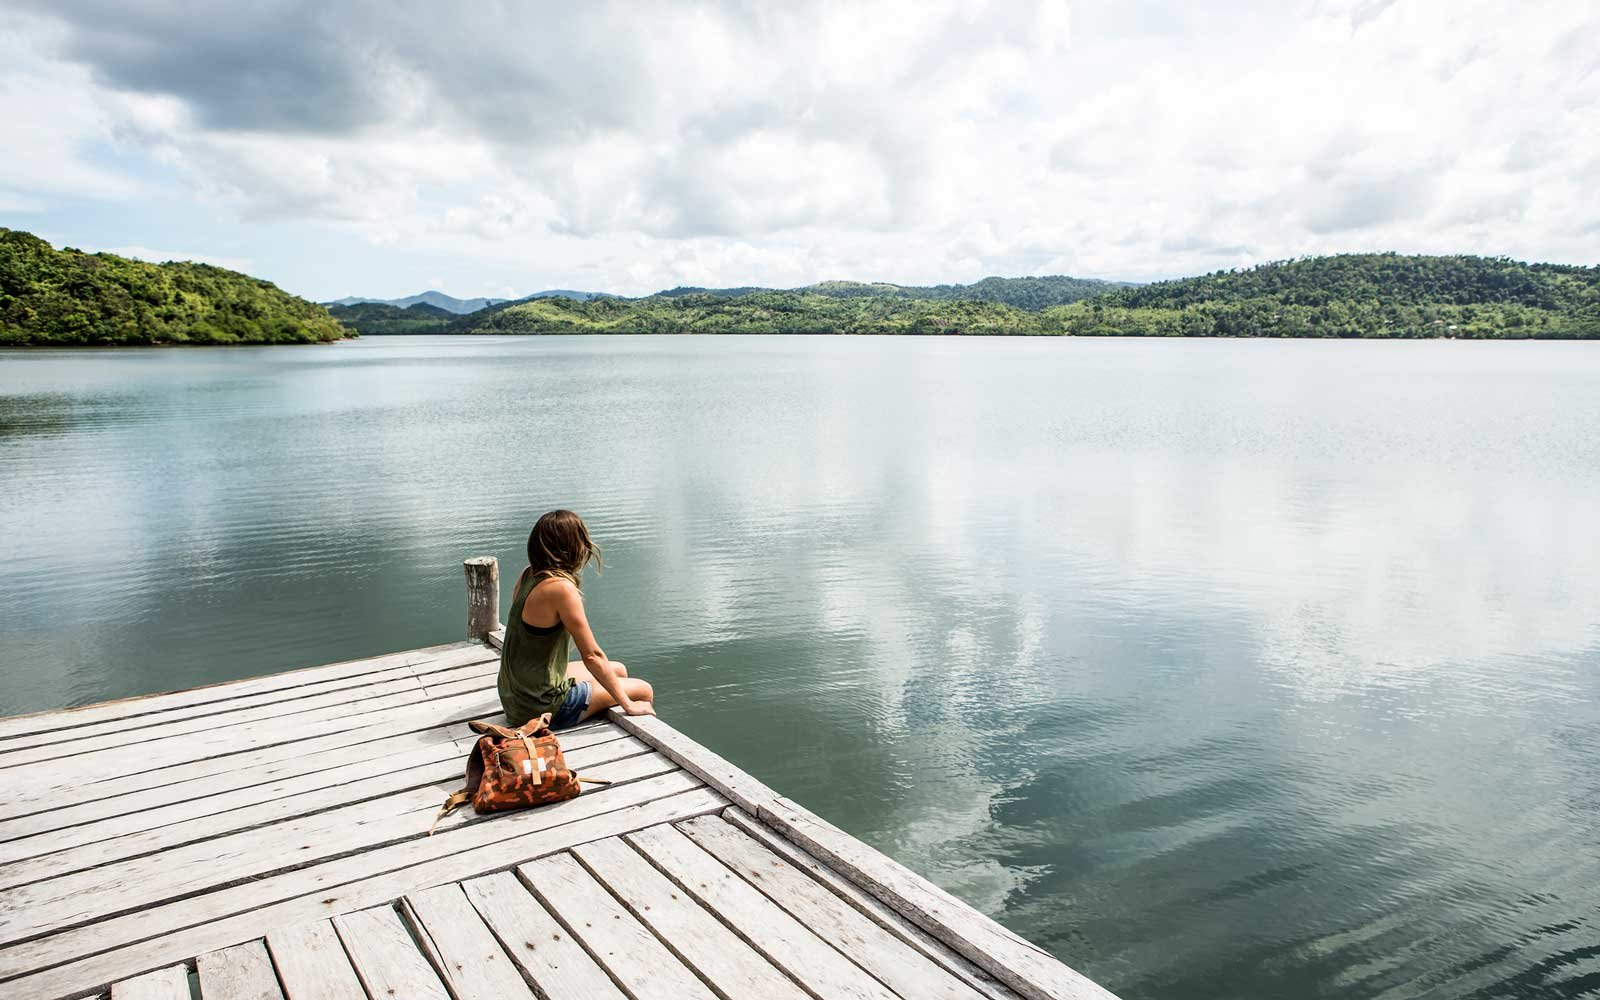 A woman sitting on a remote wooden dock overlooking a lake.